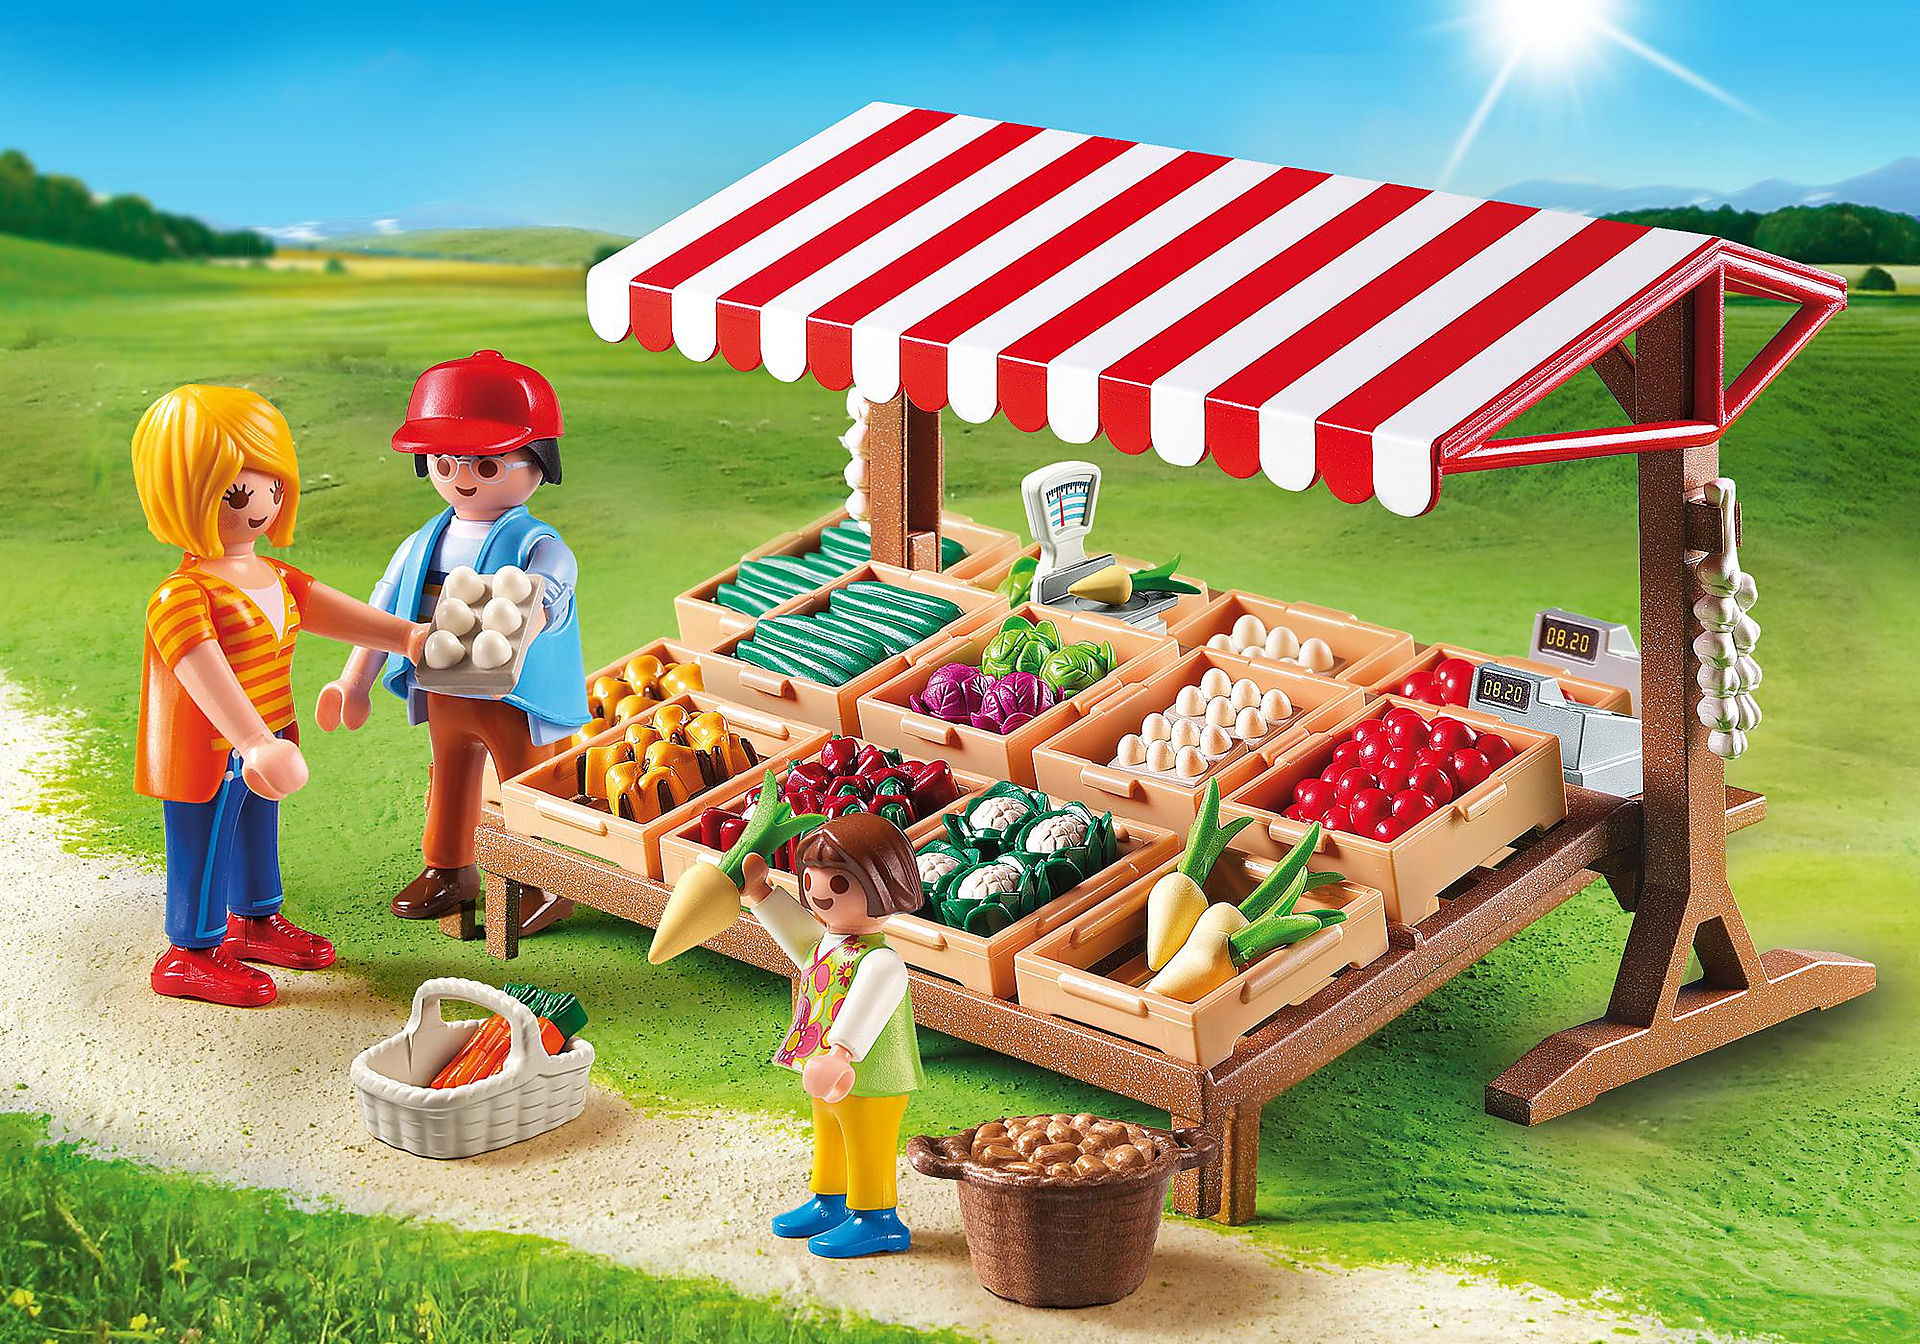 http://media.playmobil.com/i/playmobil/6121_product_detail/Banca de Vegetais